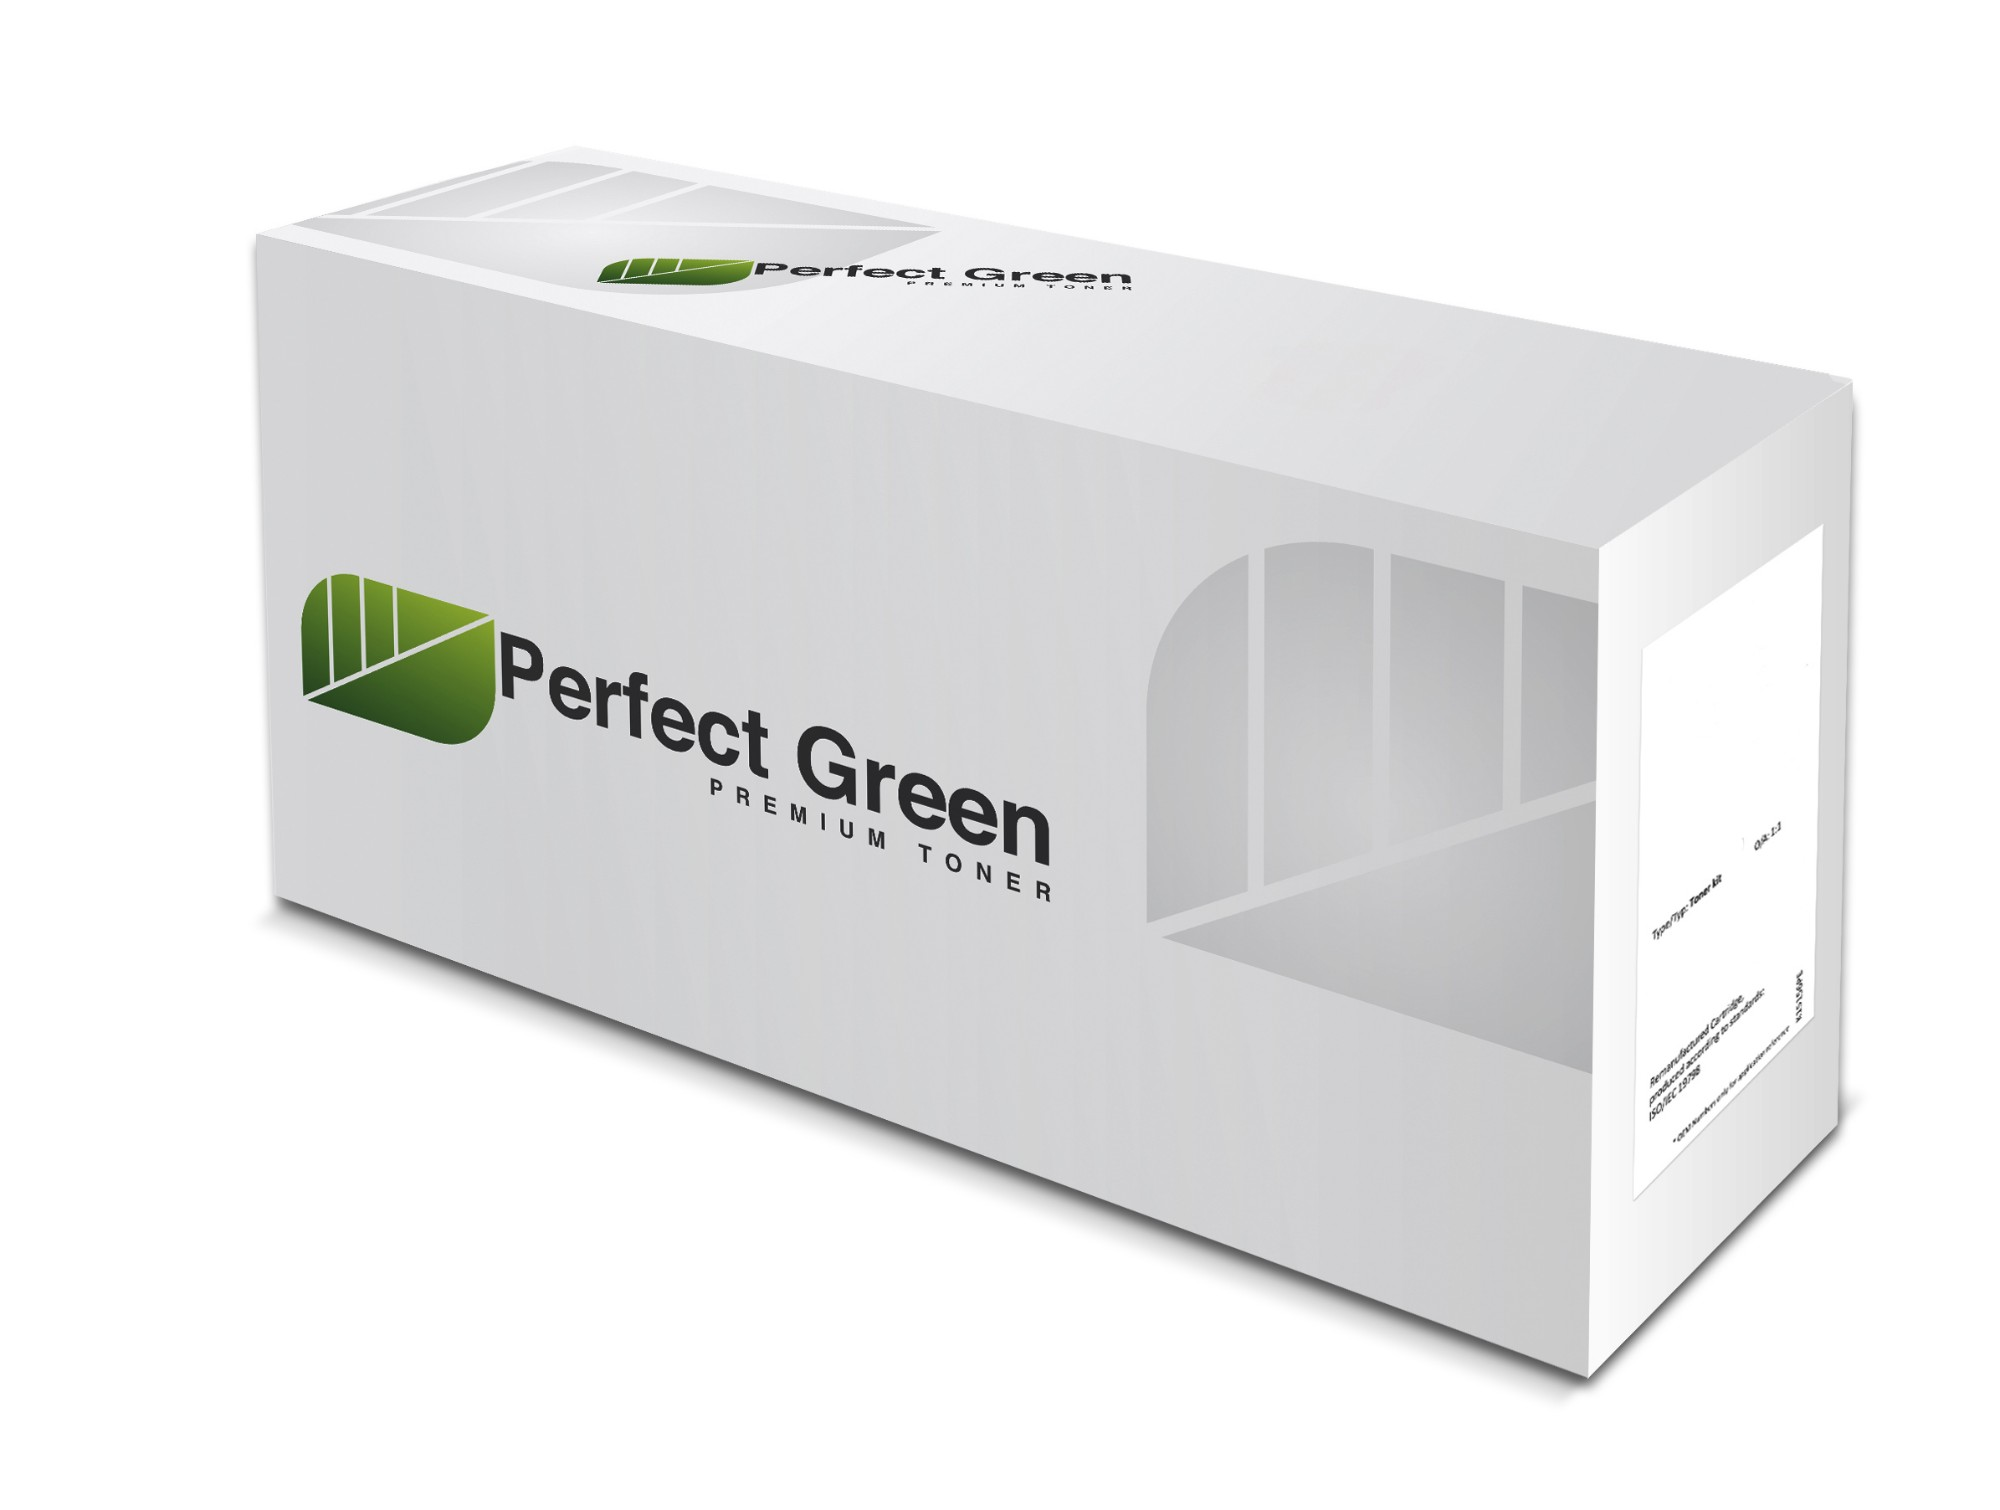 Perfect Green PERTK5150K 10000pages Black